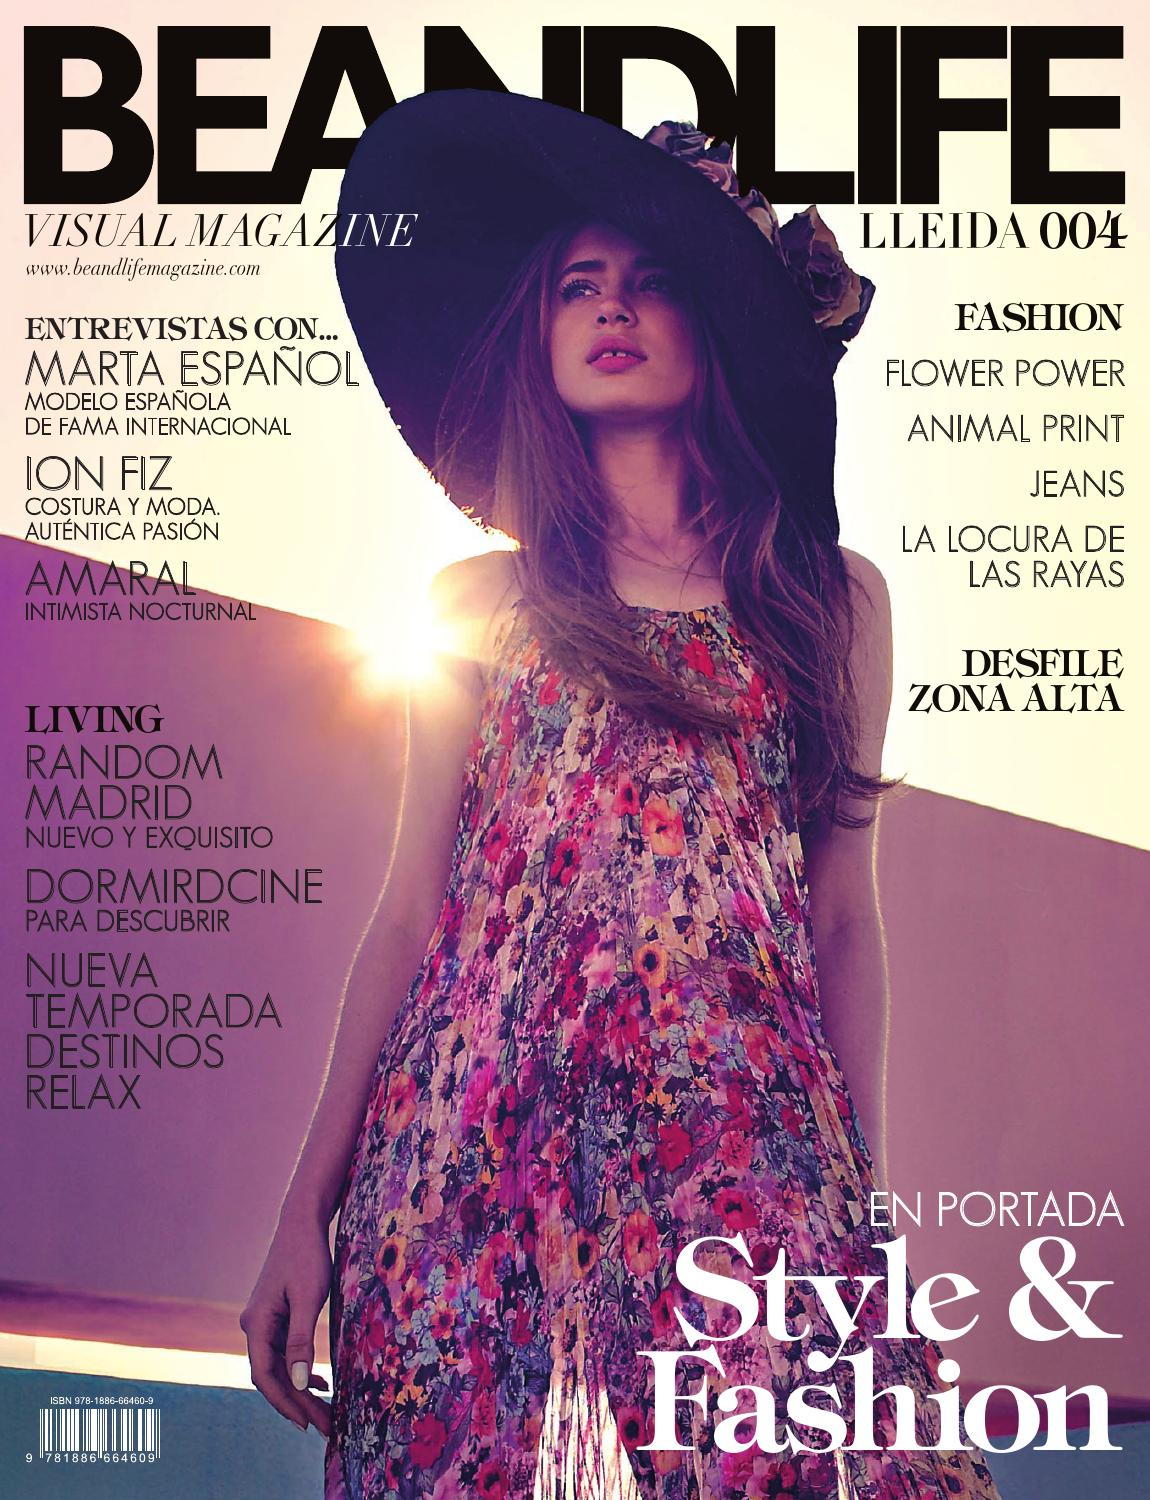 BEANDLIFE VISUAL MAG 004 LLEIDA by BEANDLIFE VISUAL MAGAZINE - issuu